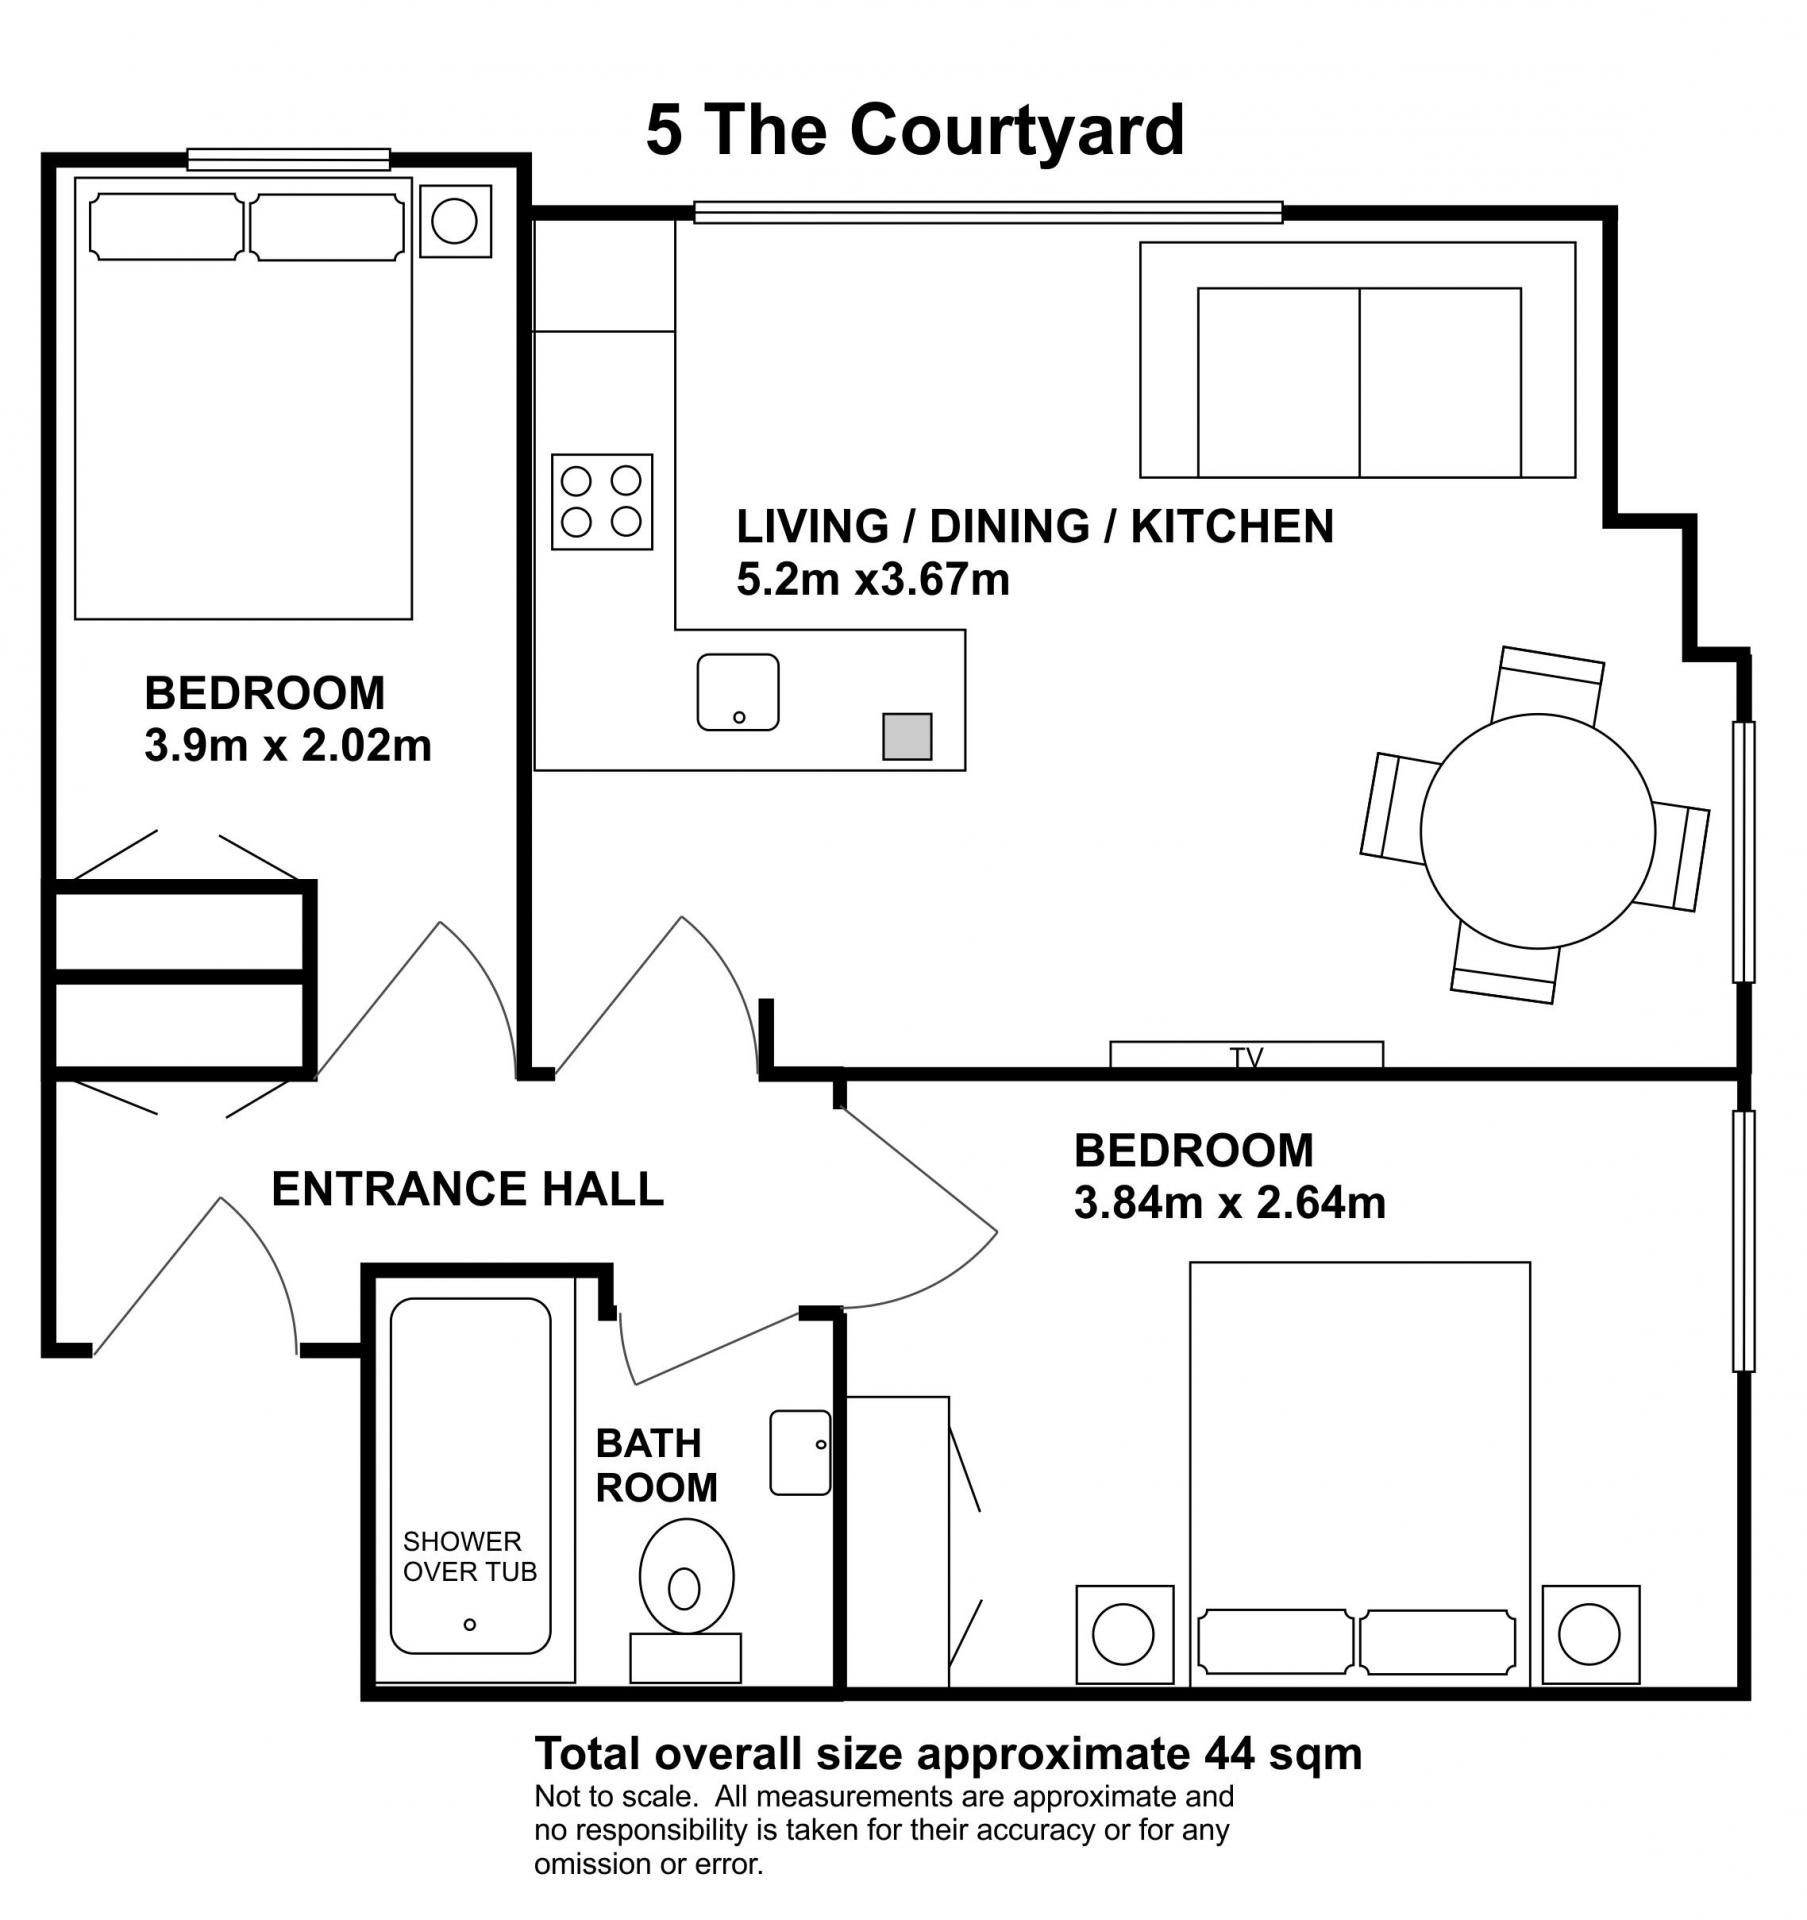 Floorplan 3 at The Courtyard Apartments